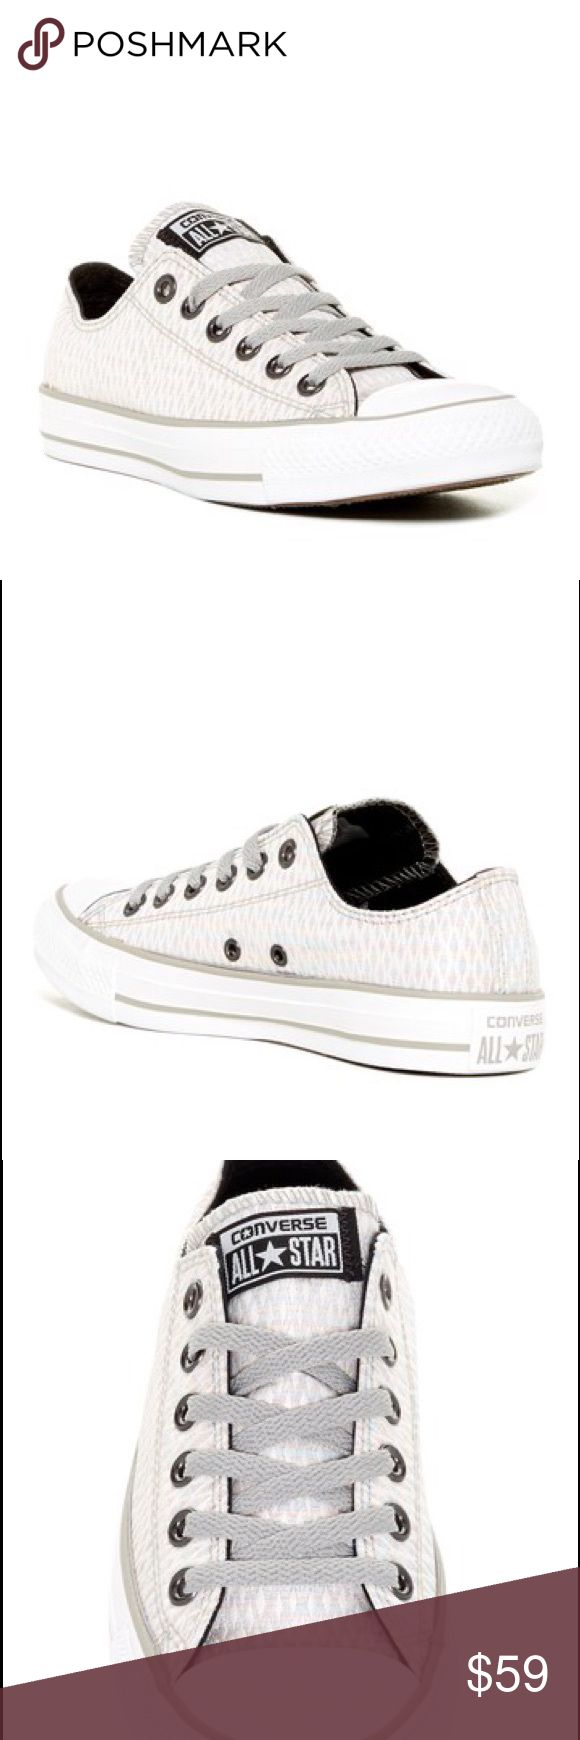 ☀️SALE! Converse Women Diamond Jacquard shoes Brand new size 10 womens Converse Shoes Sneakers